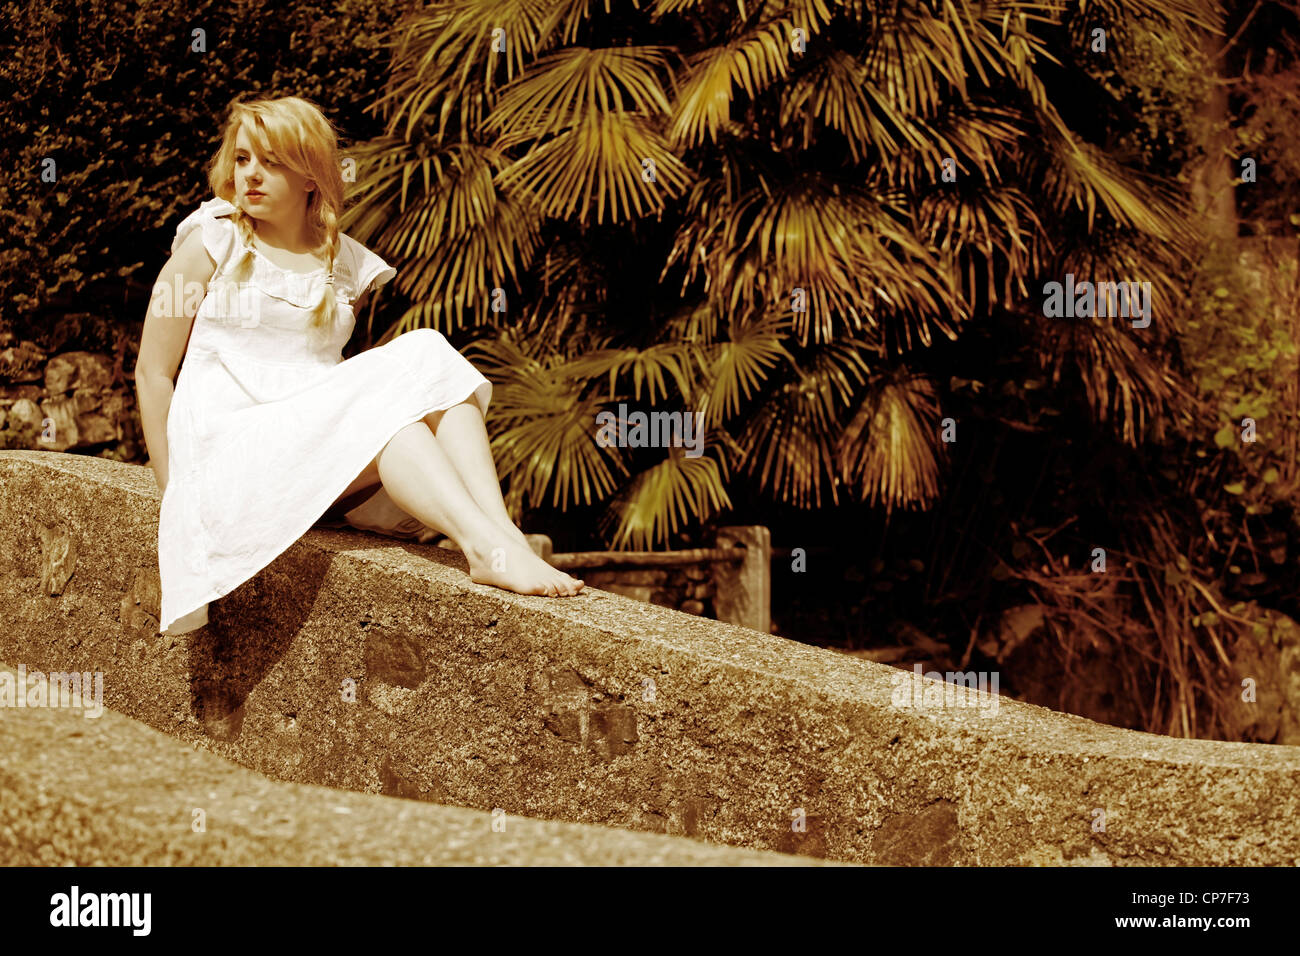 young woman with braids sitting on a wall in a white dress - Stock Image